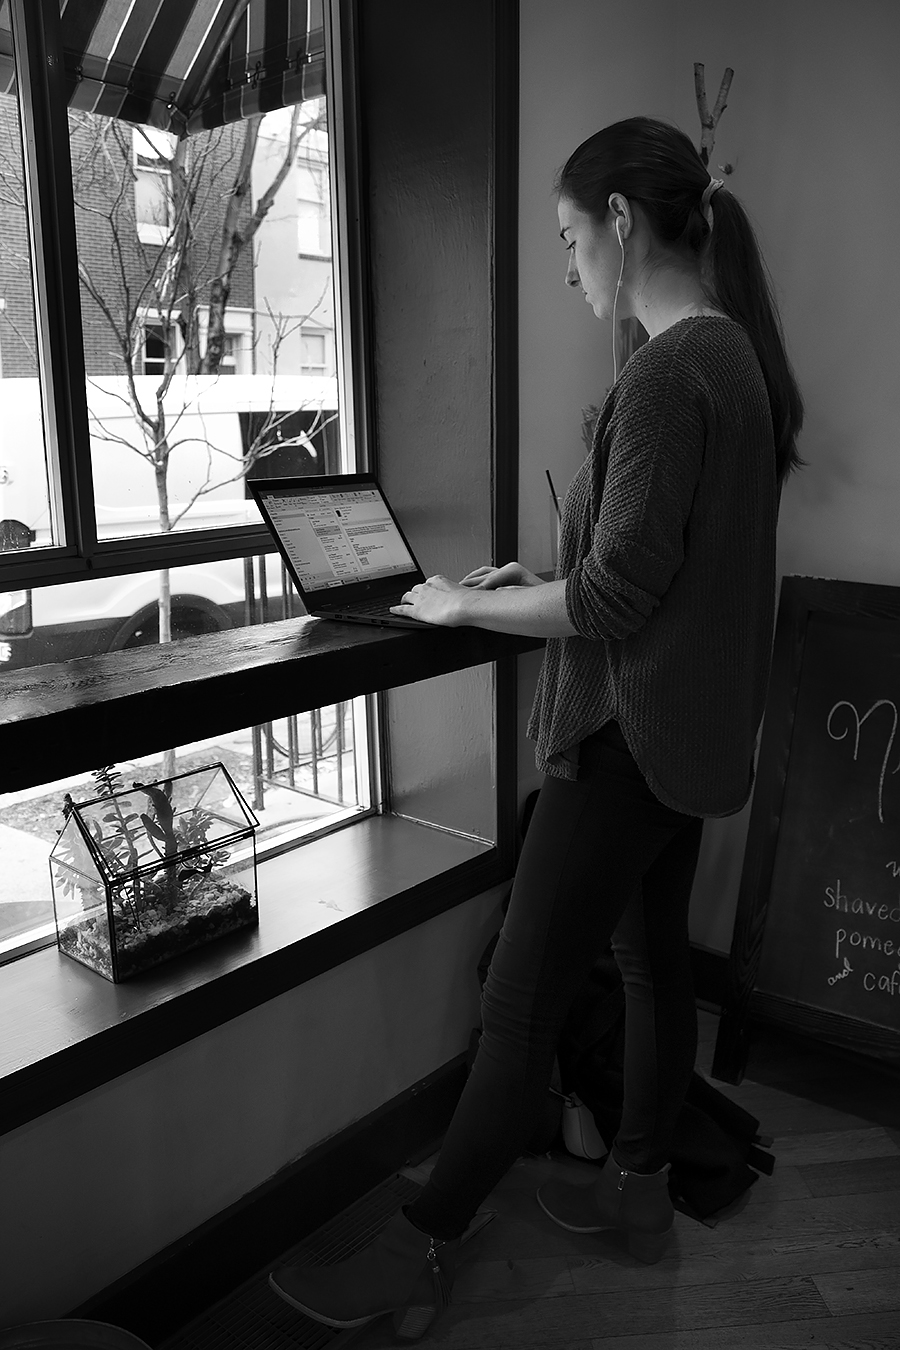 Tyler_Ling_photography_coffeeshop_computers_gazing_absorbed_earphones_music_stranger_student_working_sideshot_unaware_black_white